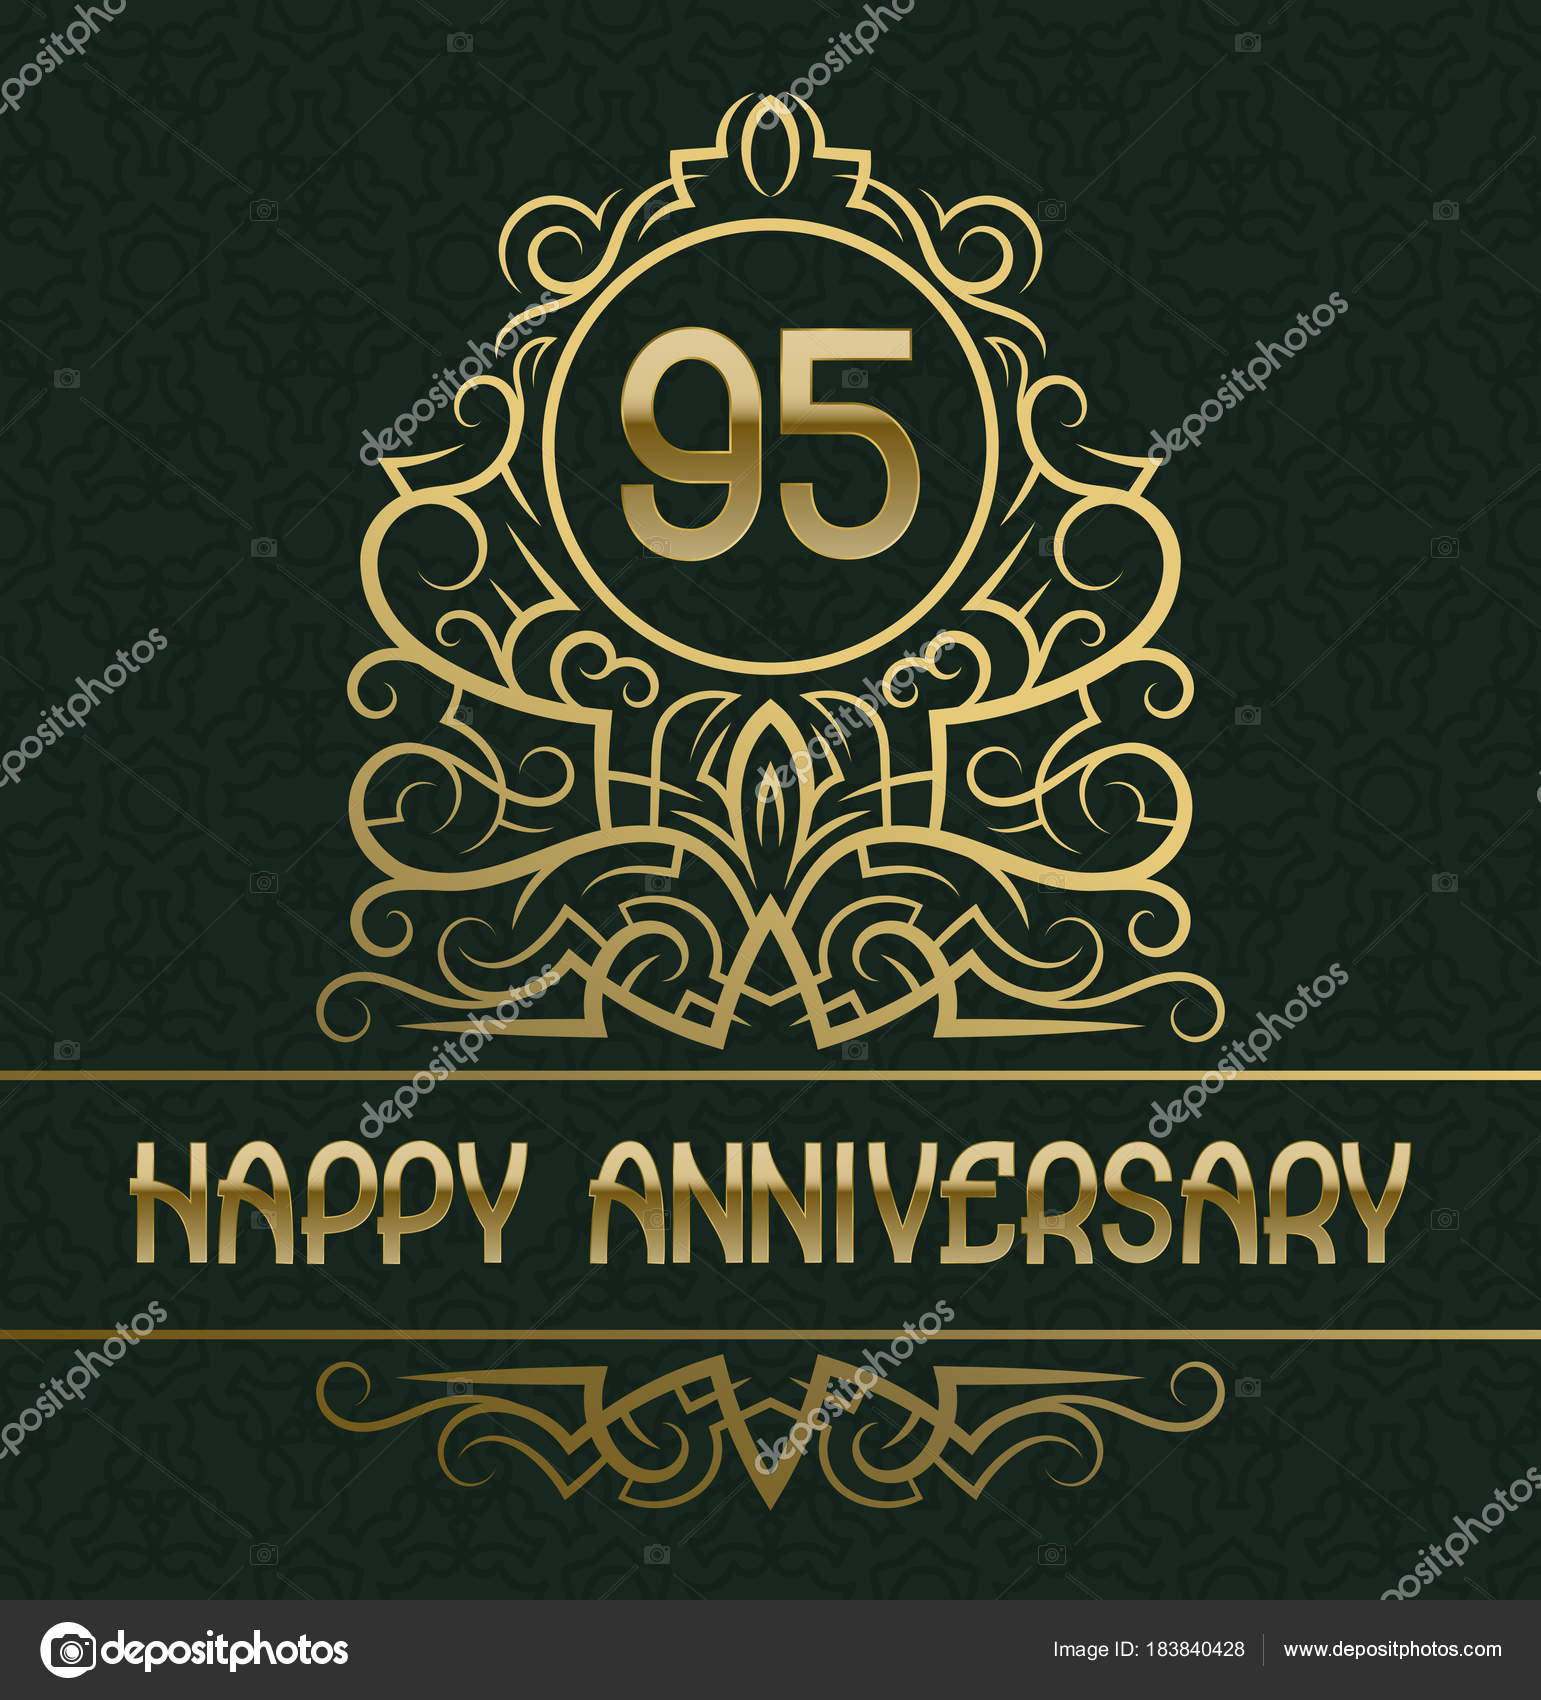 happy anniversary greeting card template for ninety five years celebration vintage design with golden elements